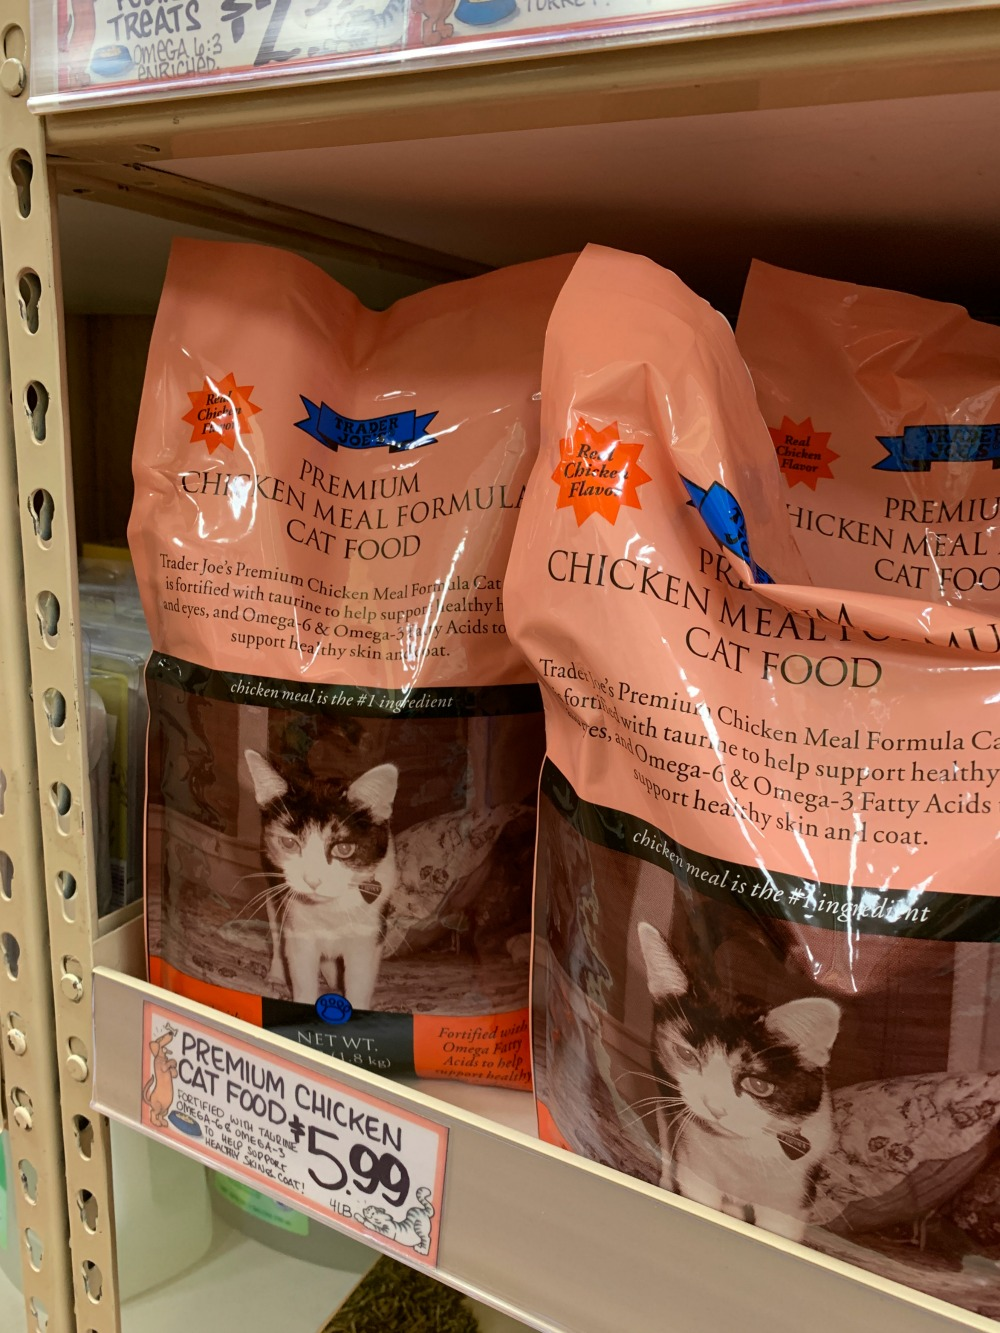 Bag of Premium Chicken Meal Formula Cat food from Trader Joe's. Bag is pink with a cat on the front.